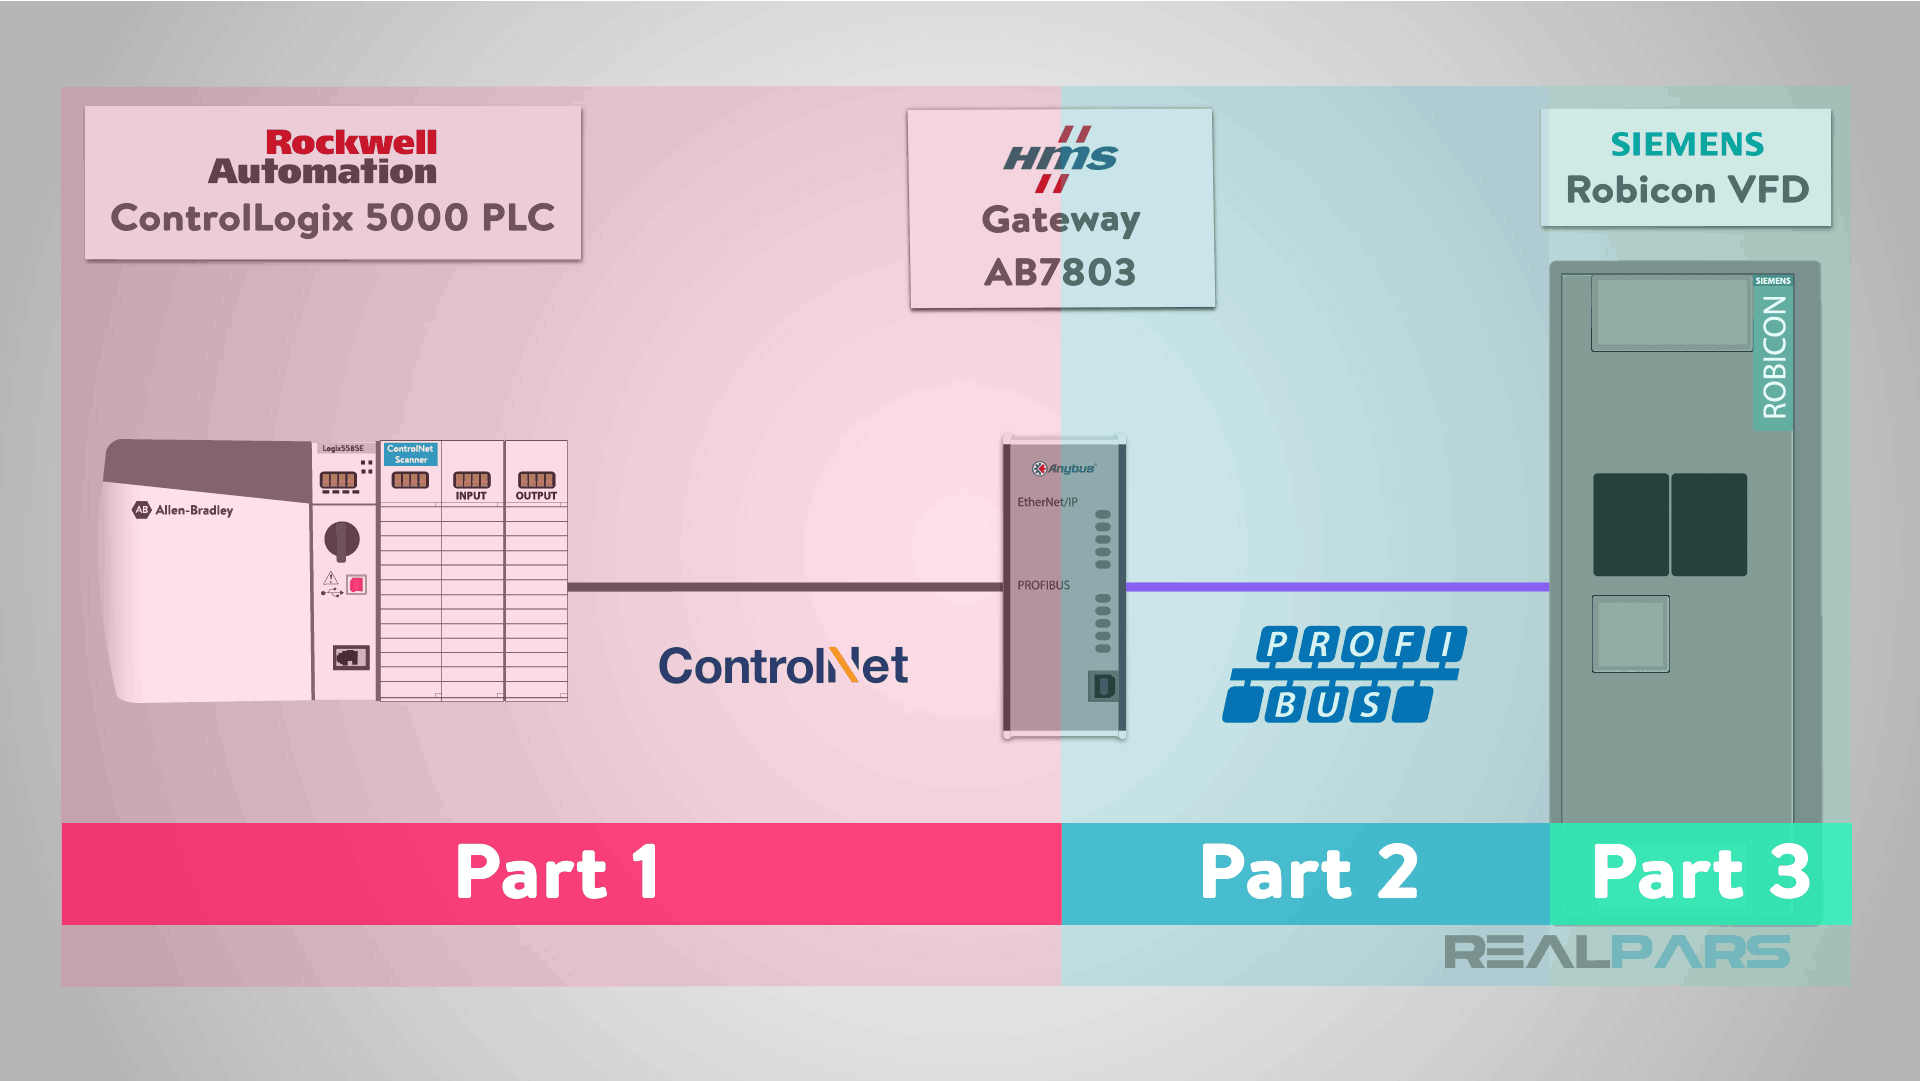 How to Control a VFD with a PLC - Part 1 (ControlLogix 5000